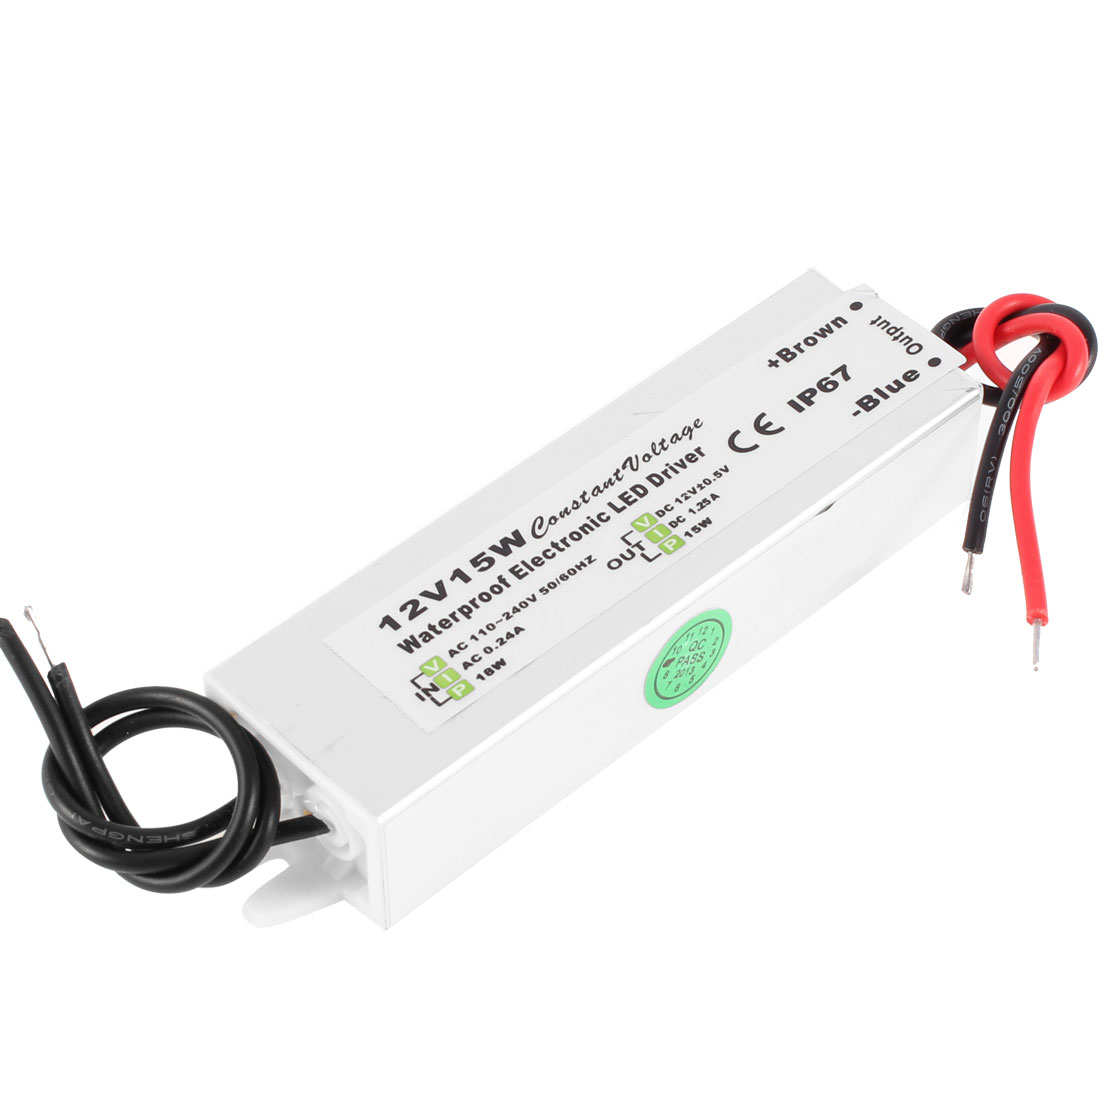 AC 110-240V IP67 Waterproof Constant Current Driver Power Supply for 12V 15W LED